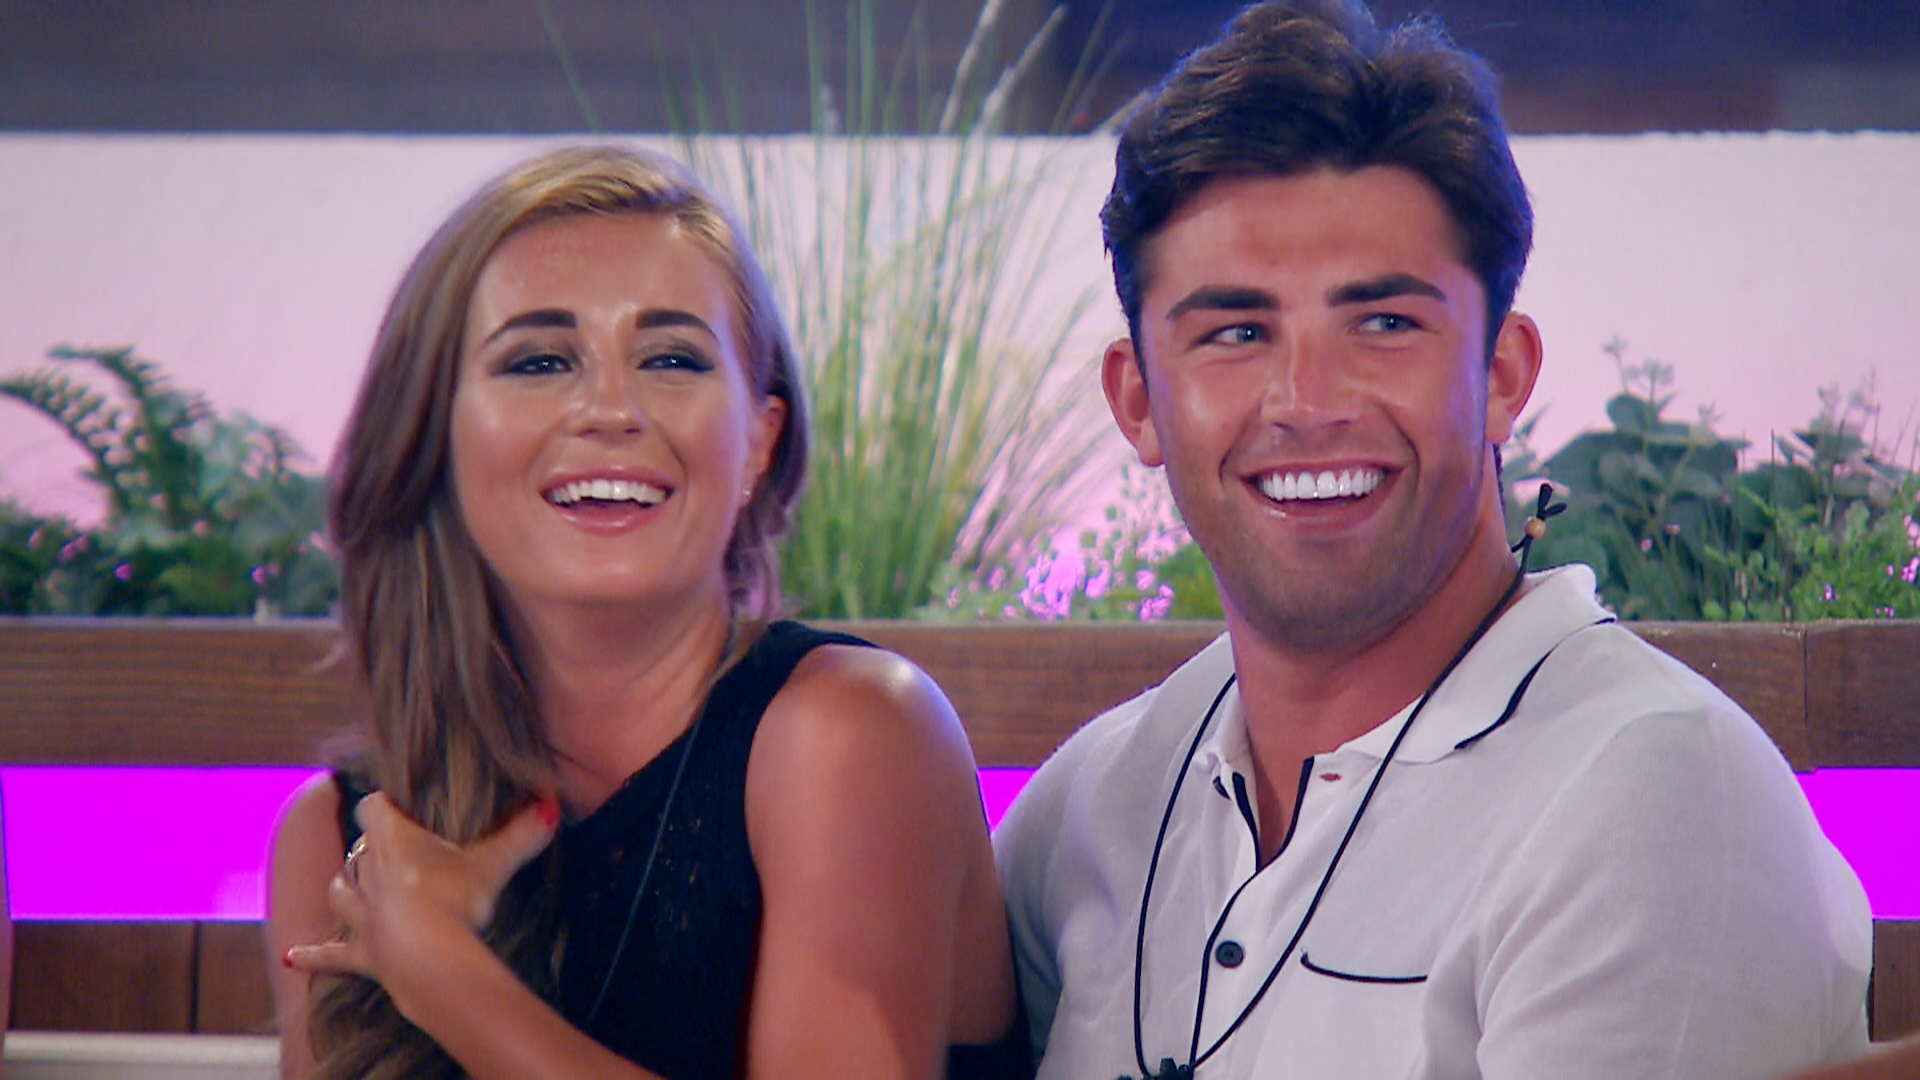 Love Island's Jack Fincham and Dani Dyer (ITV)